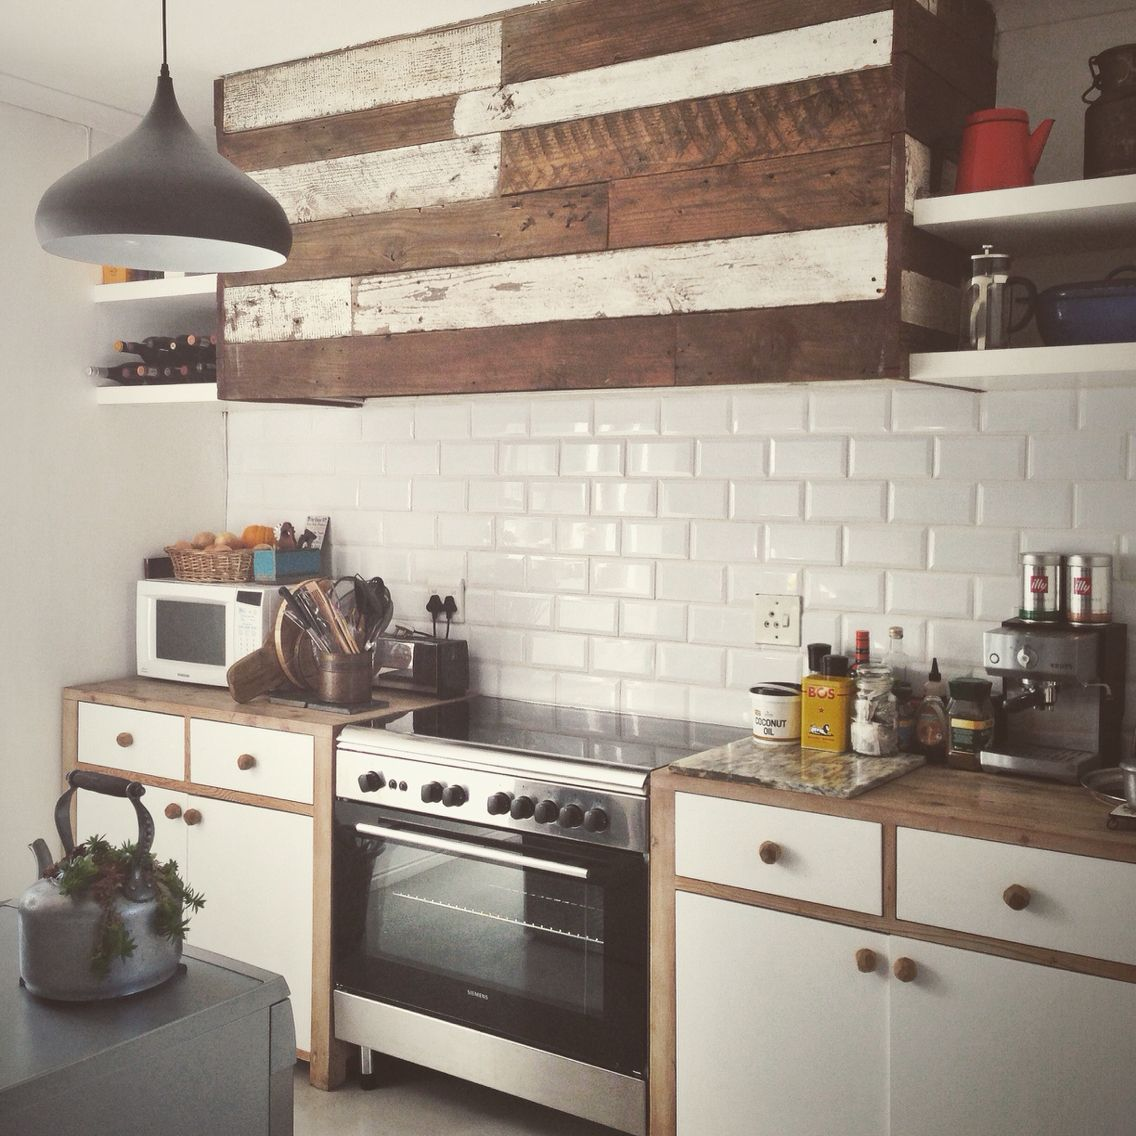 My Kitchen Units In Repurposed Bleached Oregon Pine And Cladded Extractor Unit By The Furniture Factory